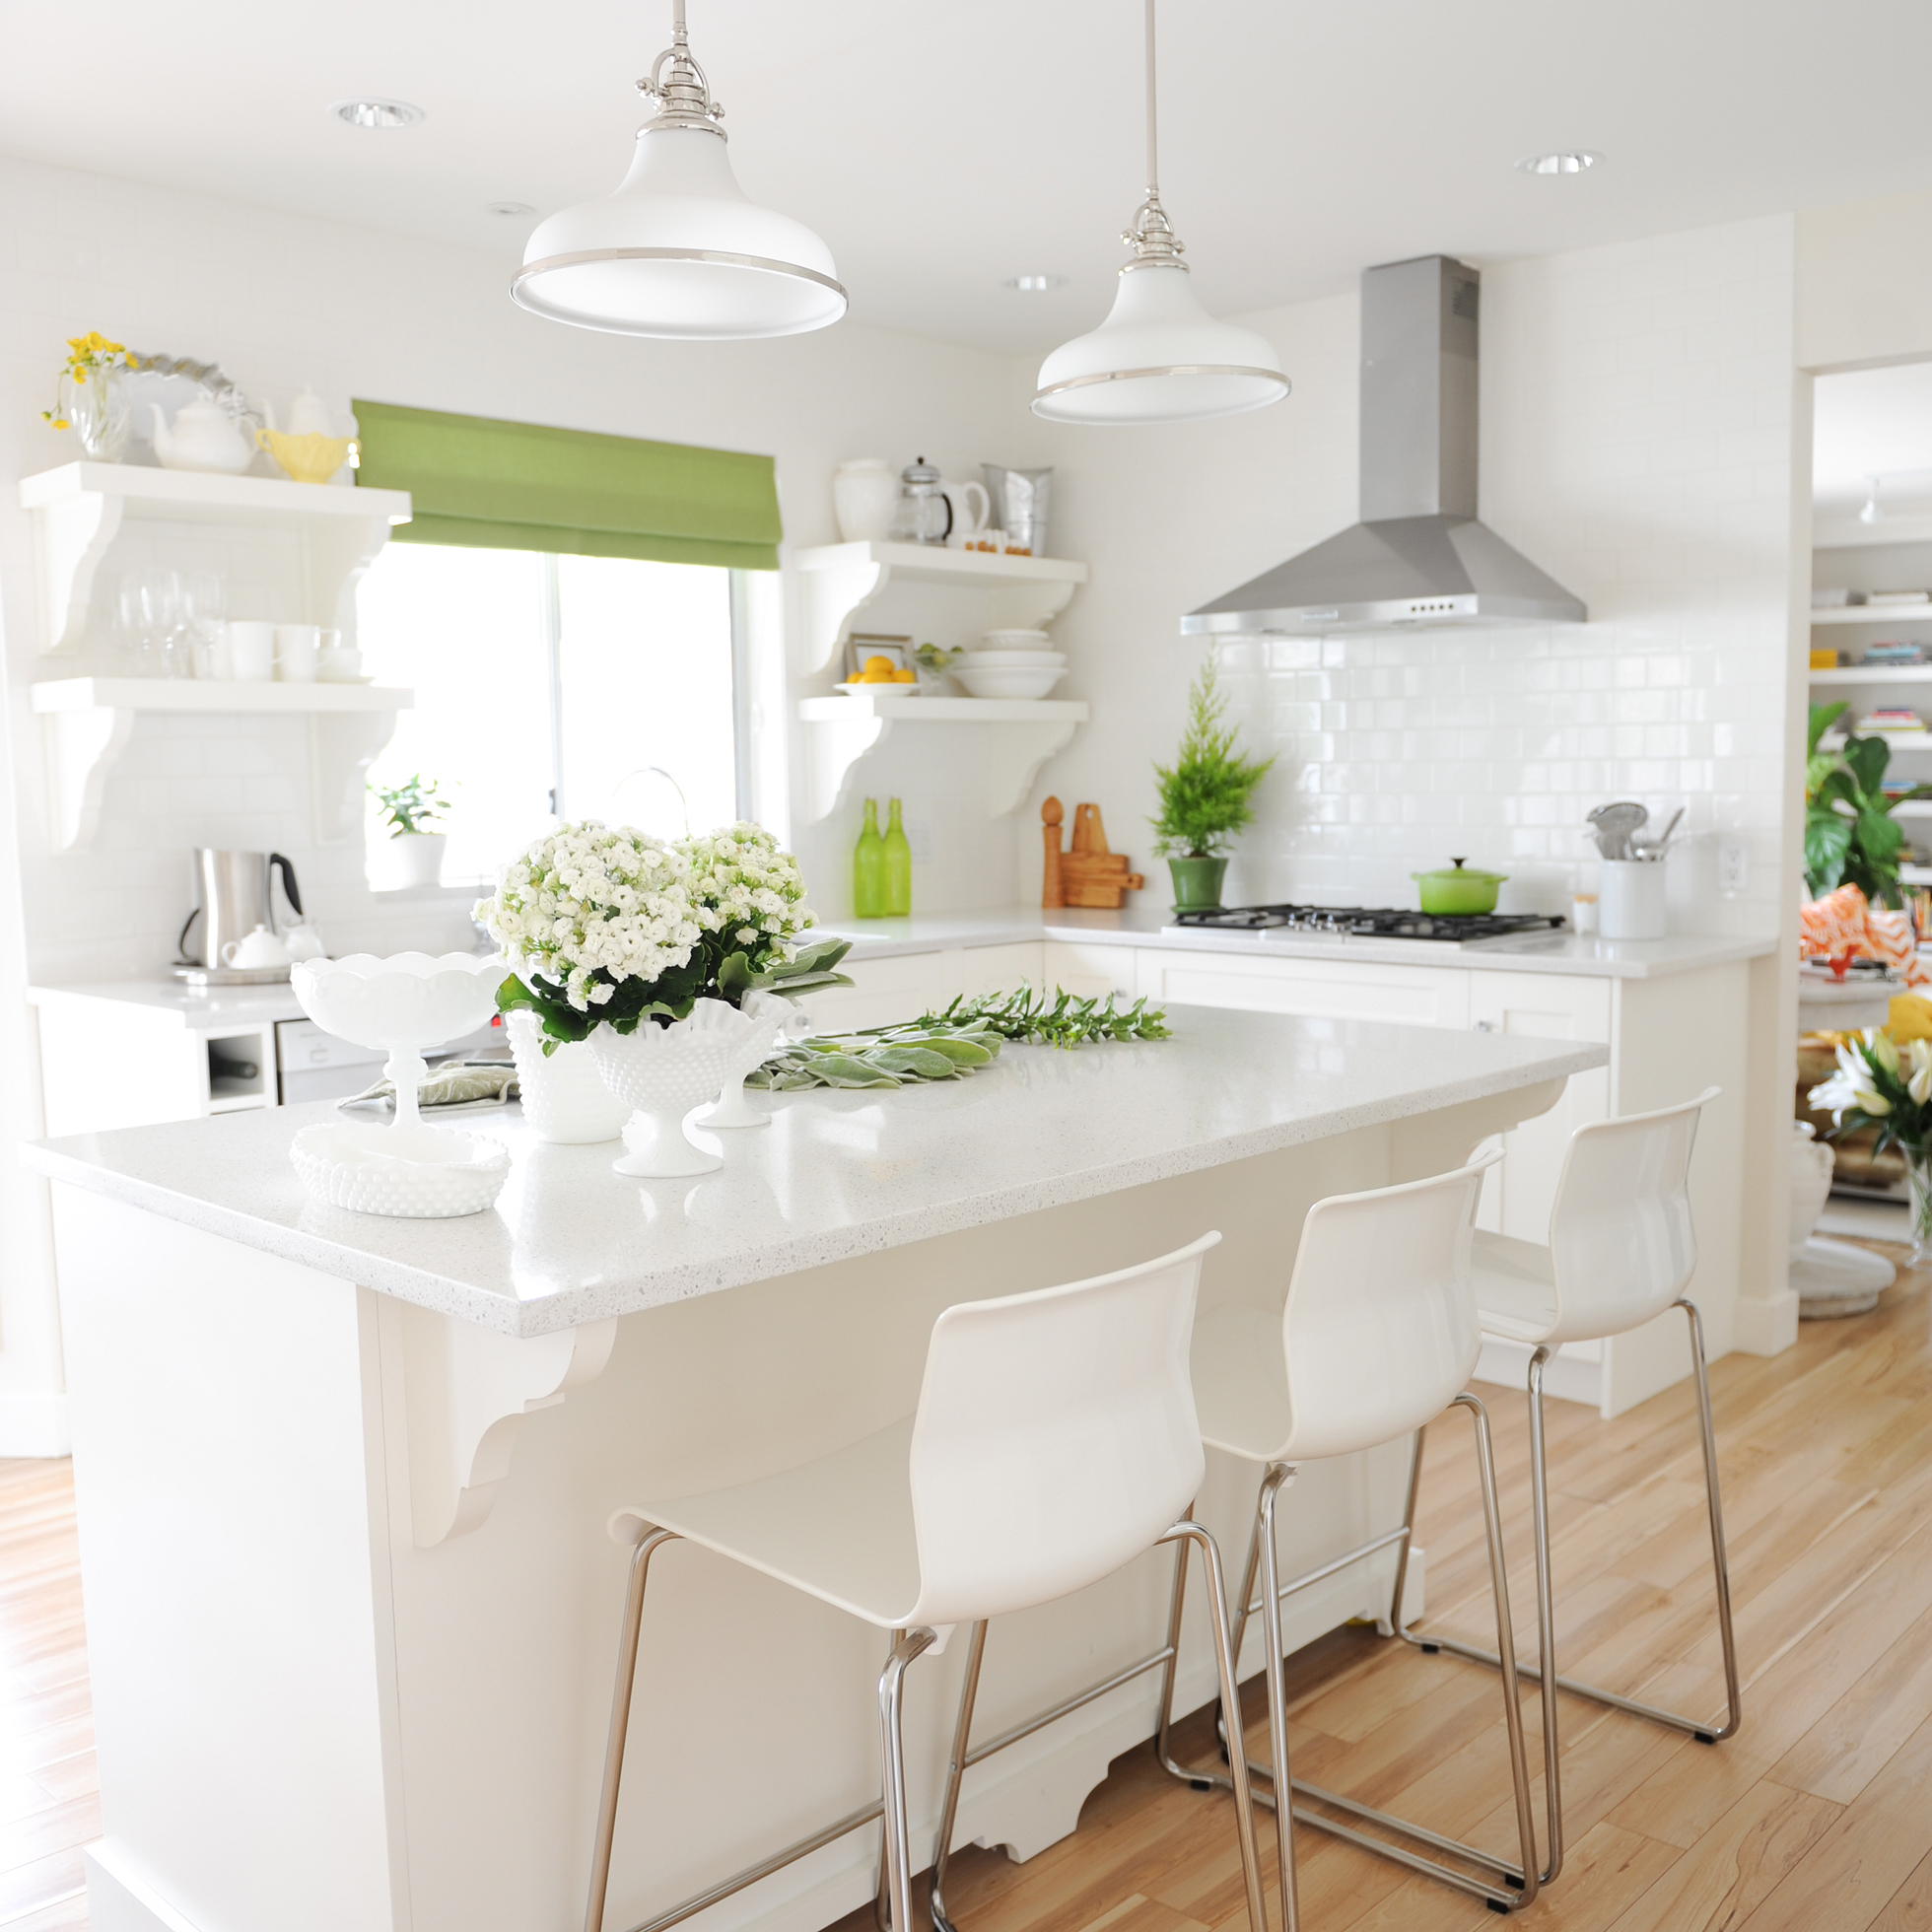 A White Bright Kitchen With Green Curtains And Accents